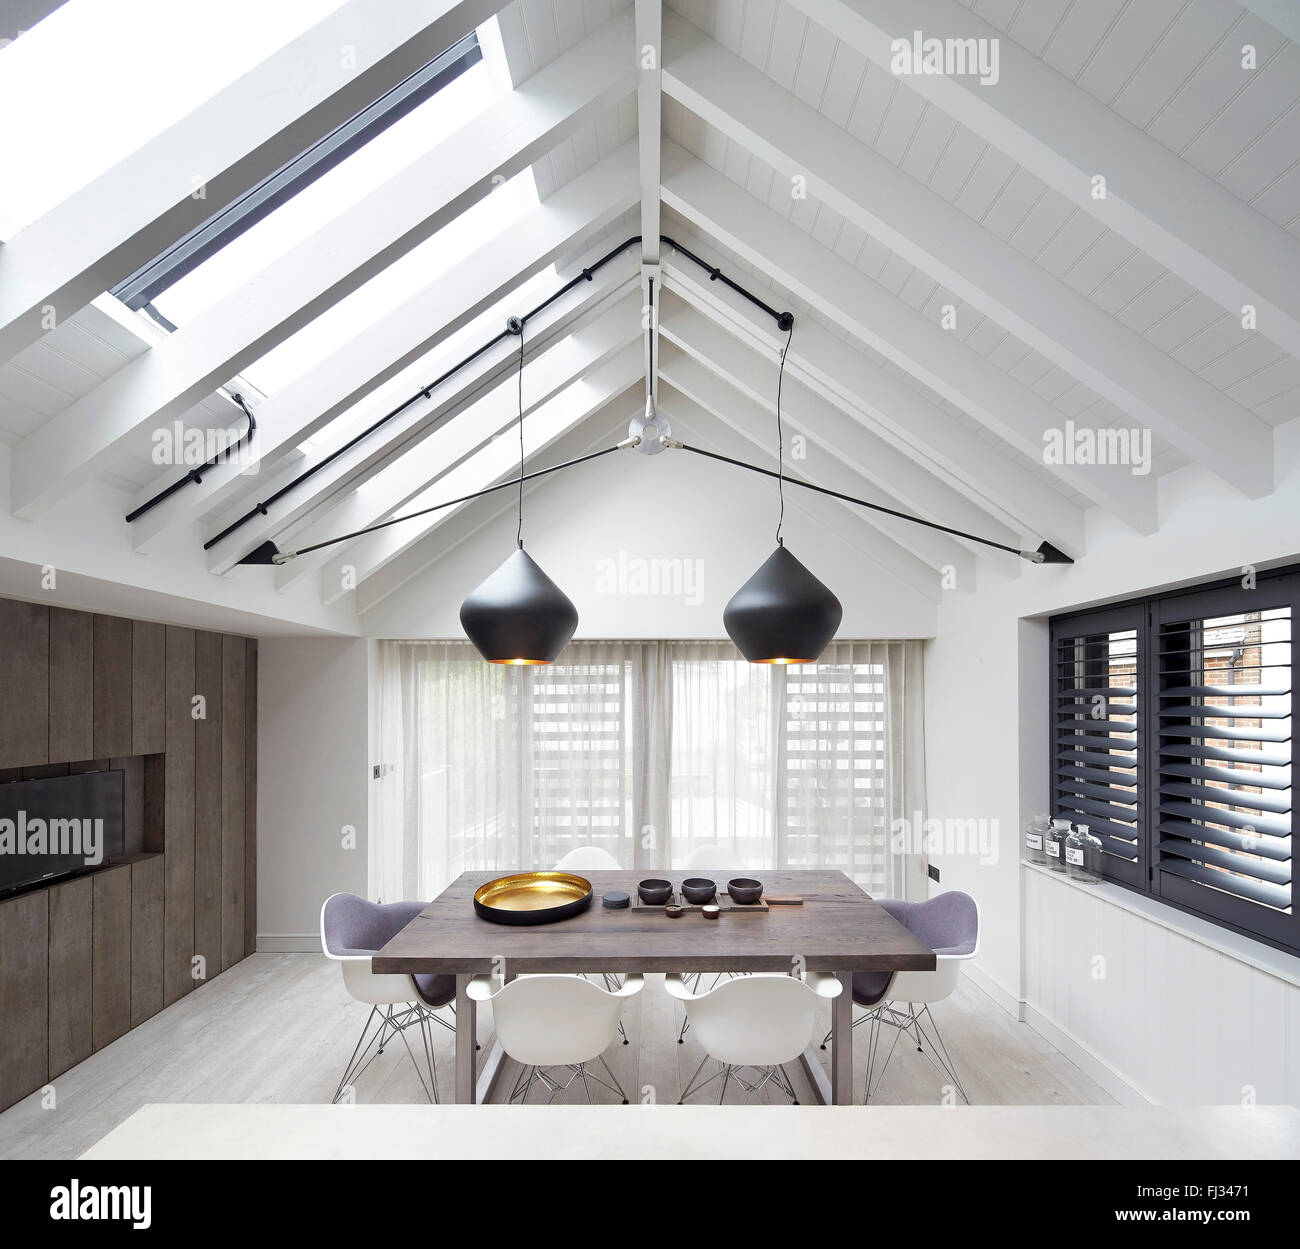 Deakins Stock Photos Images Page 3 Alamy Lighting Diagram Dining Room Orleans Road Twickenham United Kingdom Architect Burwell Architects